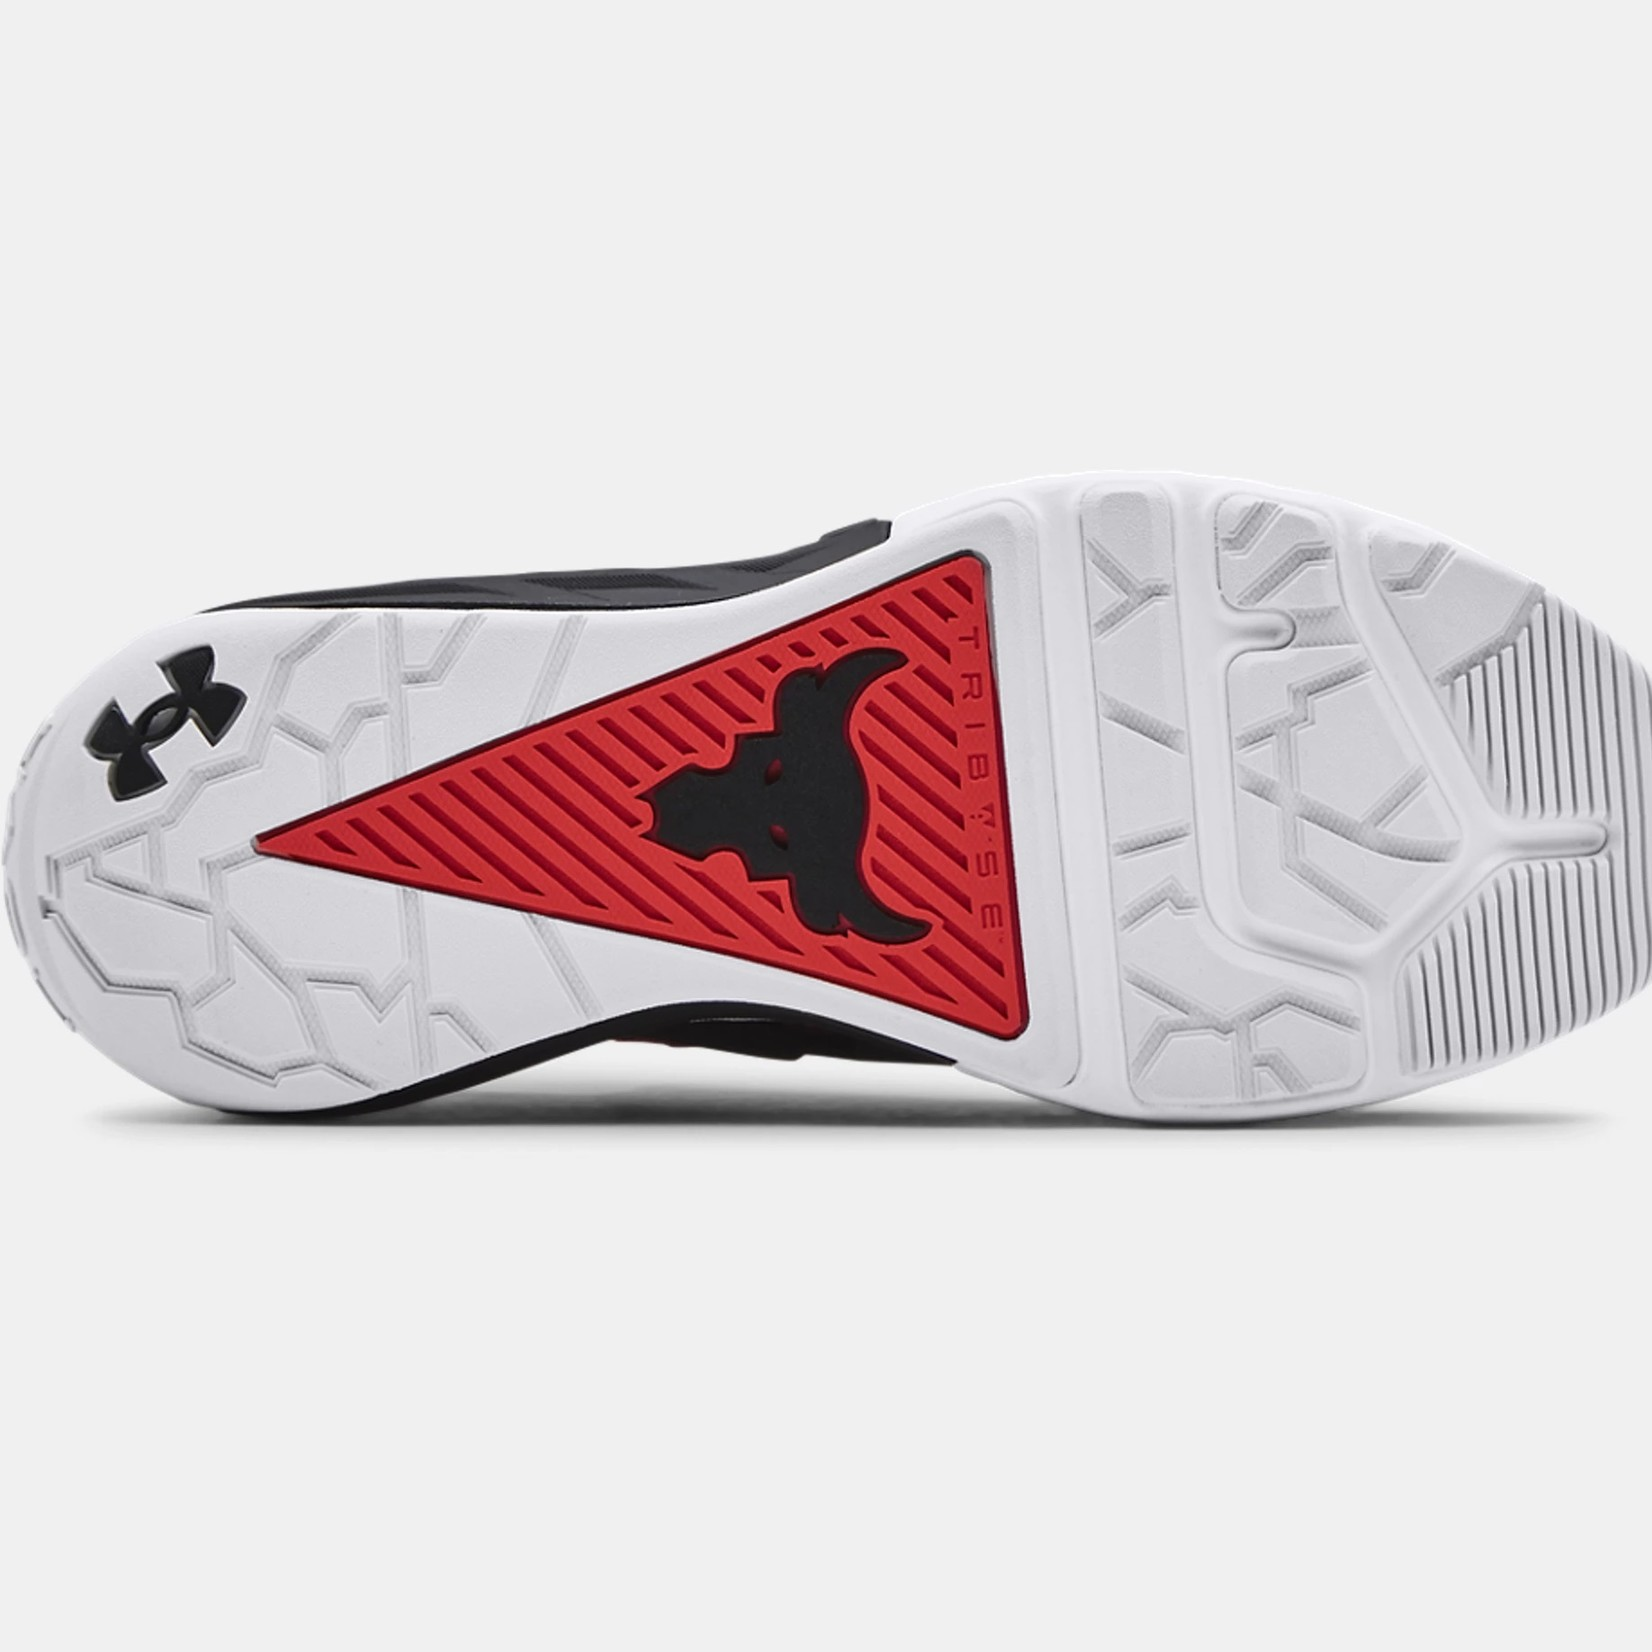 Under Armour UA Project Rock 4-Red